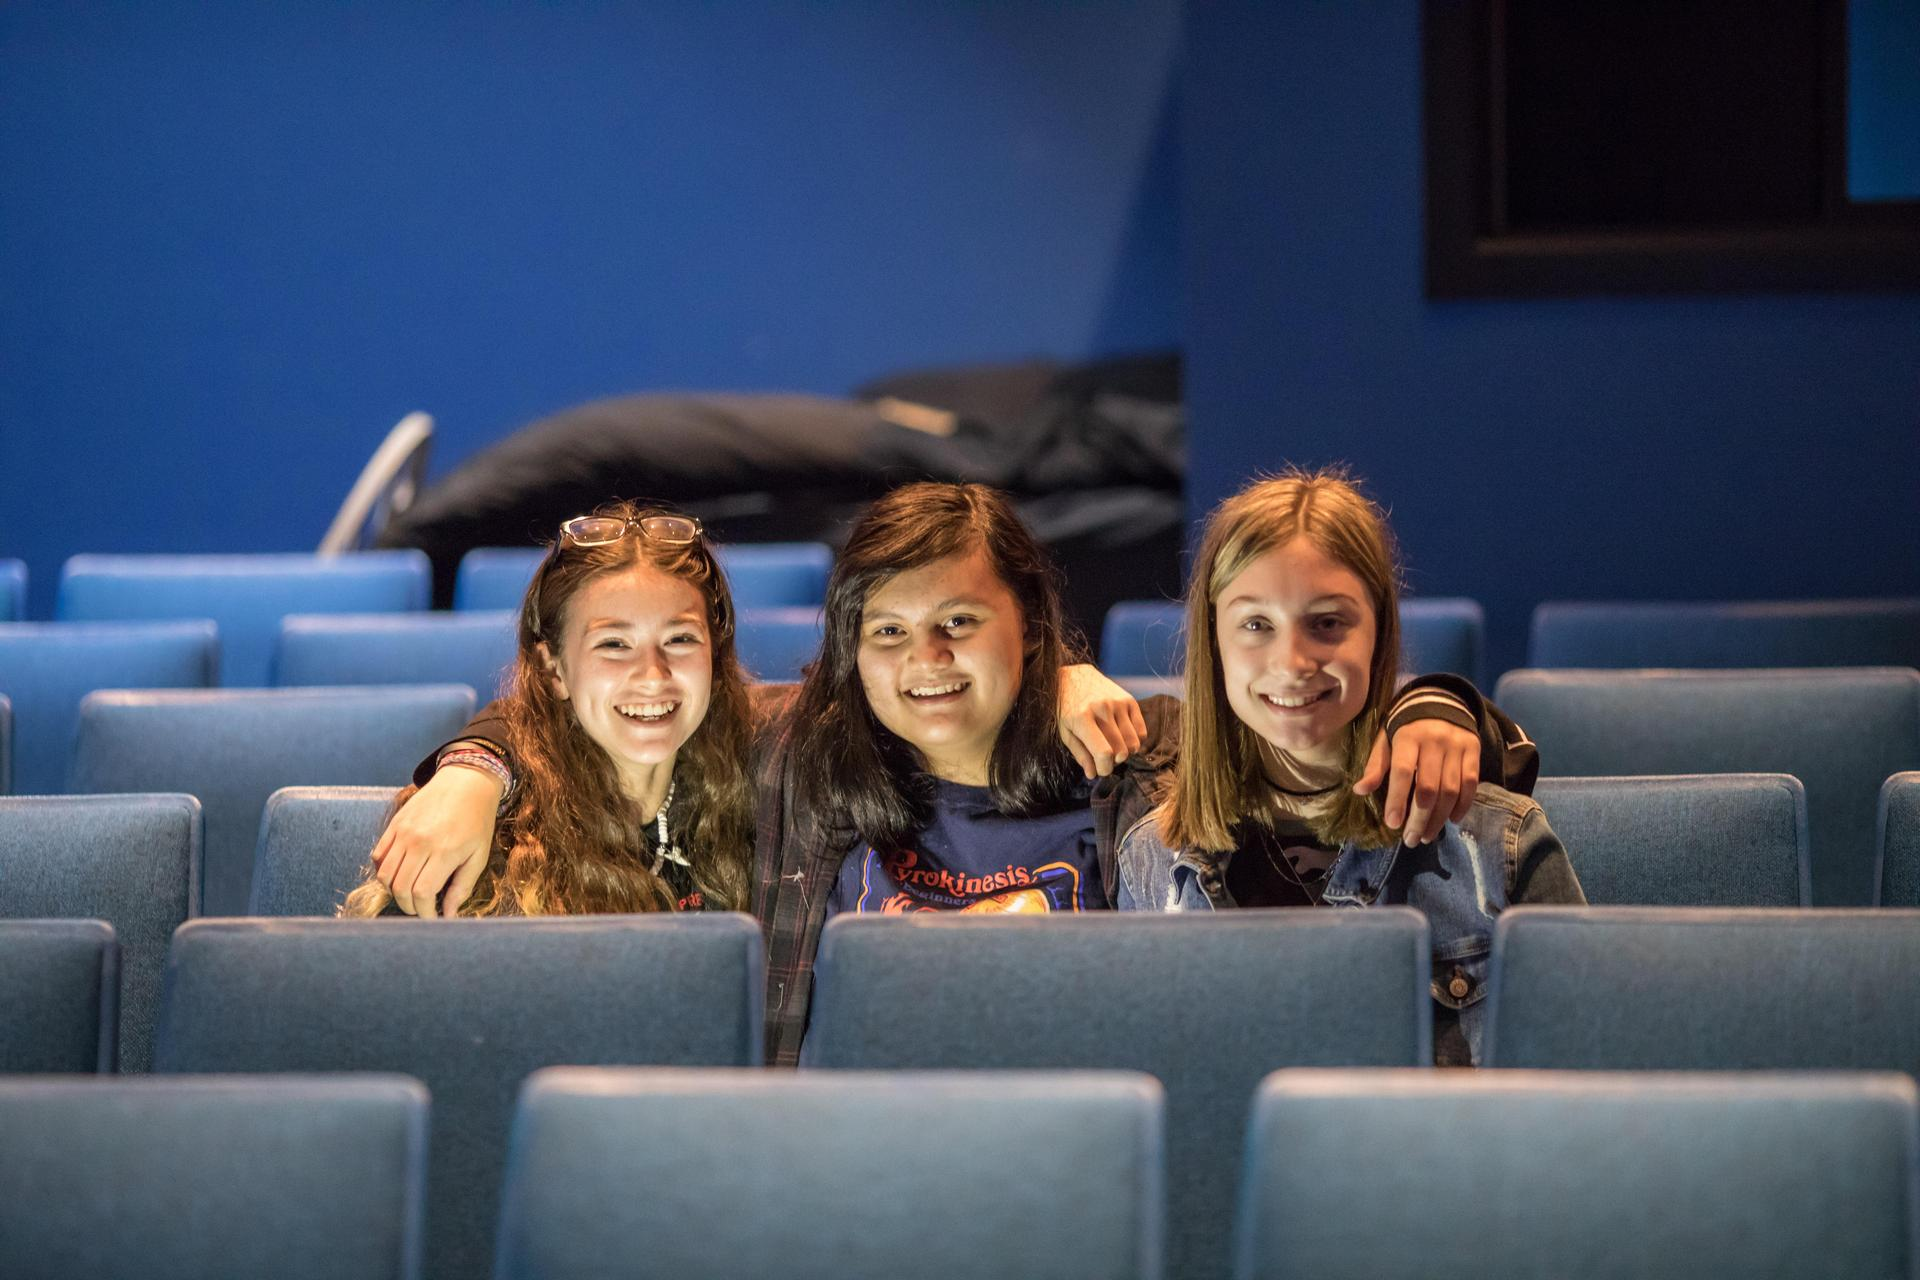 students smiling in the theater